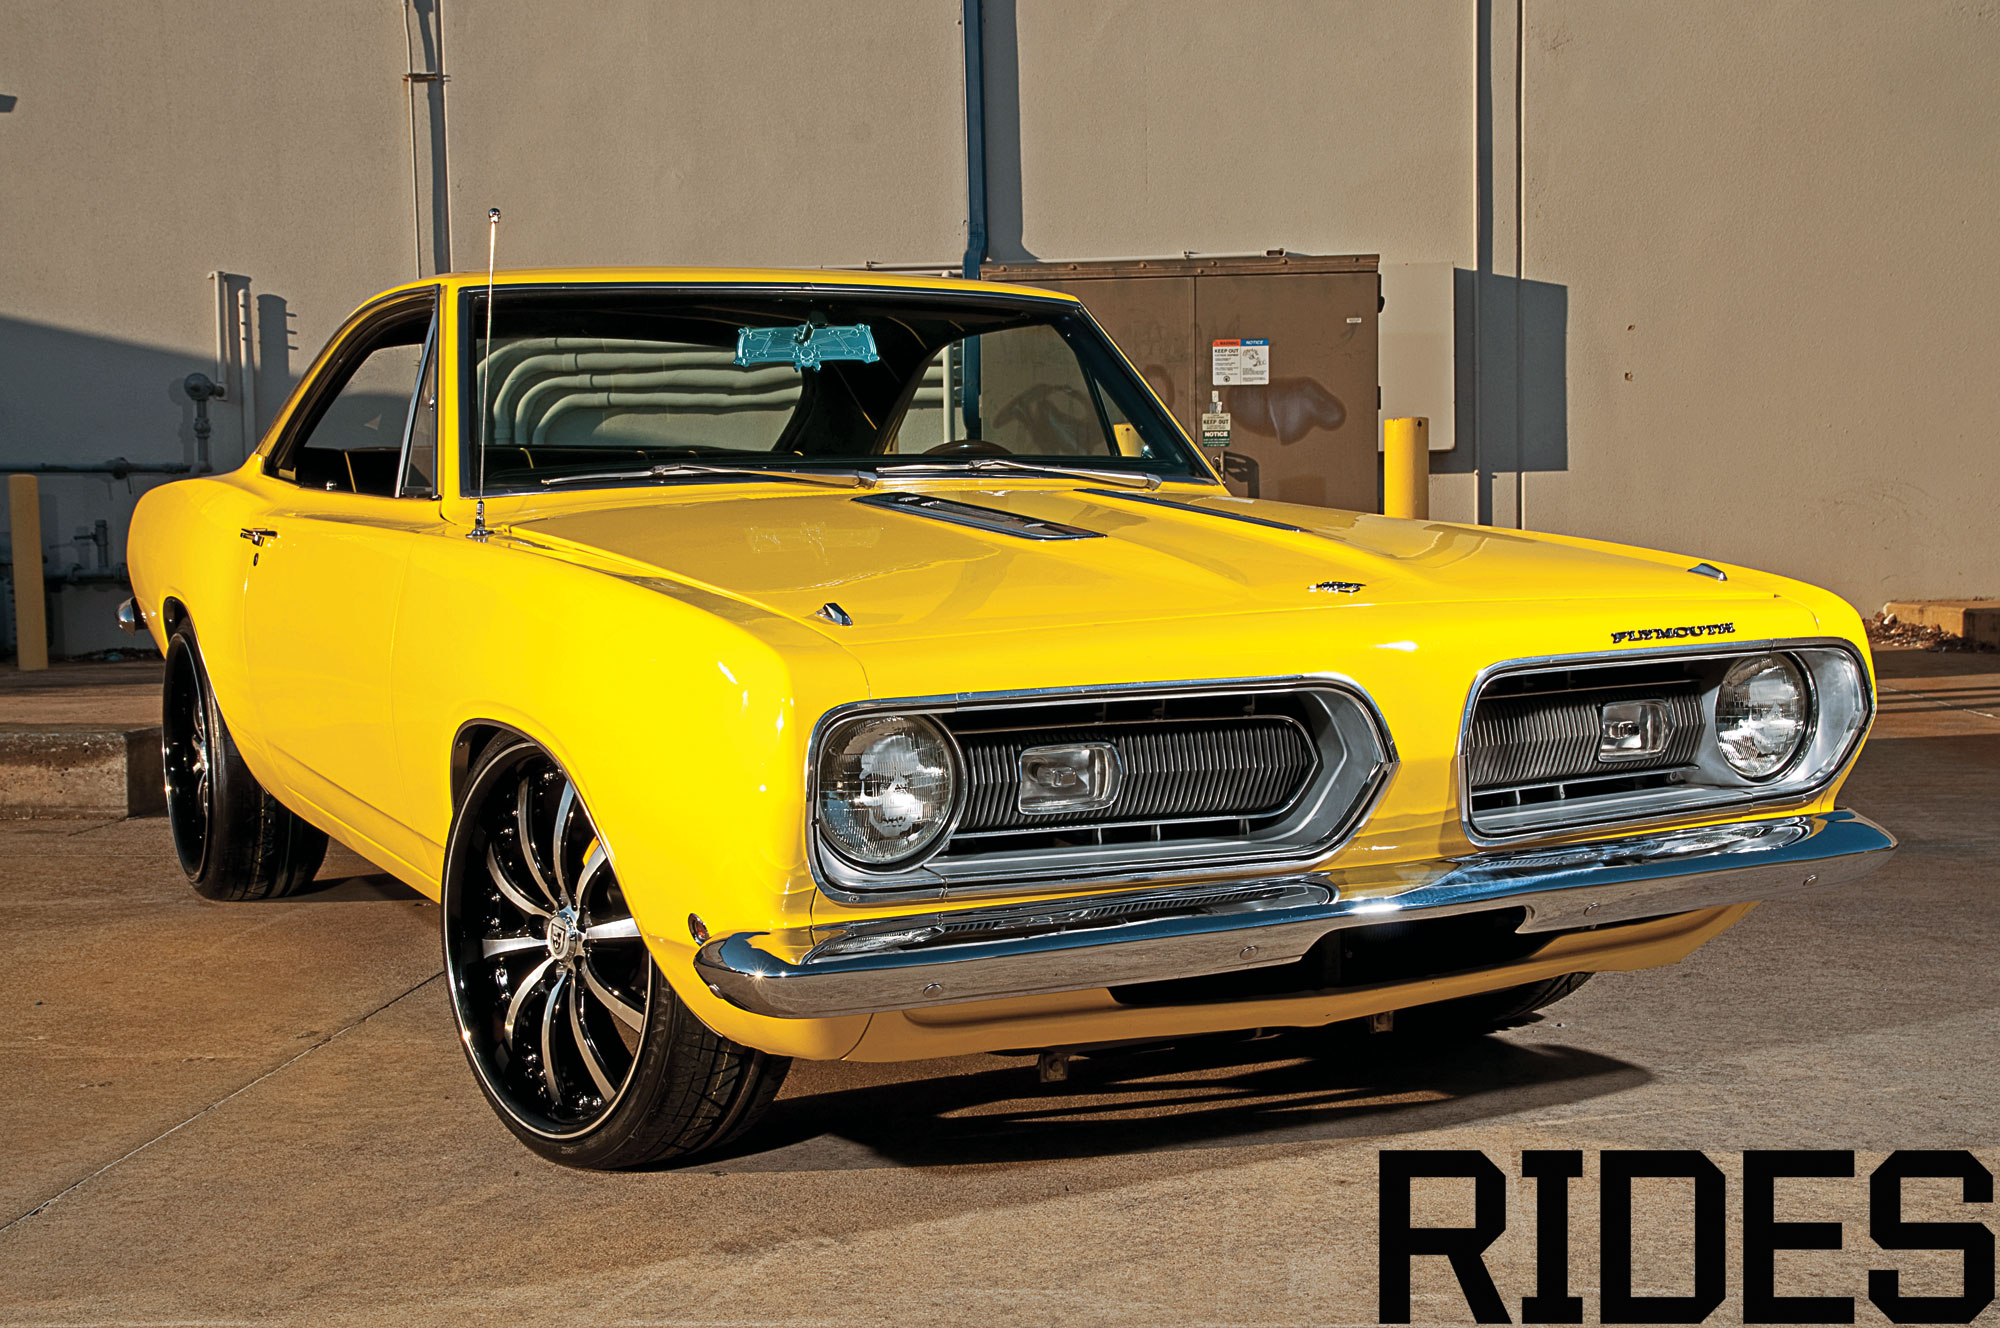 1968 Plymouth Barracuda - Rides Magazine